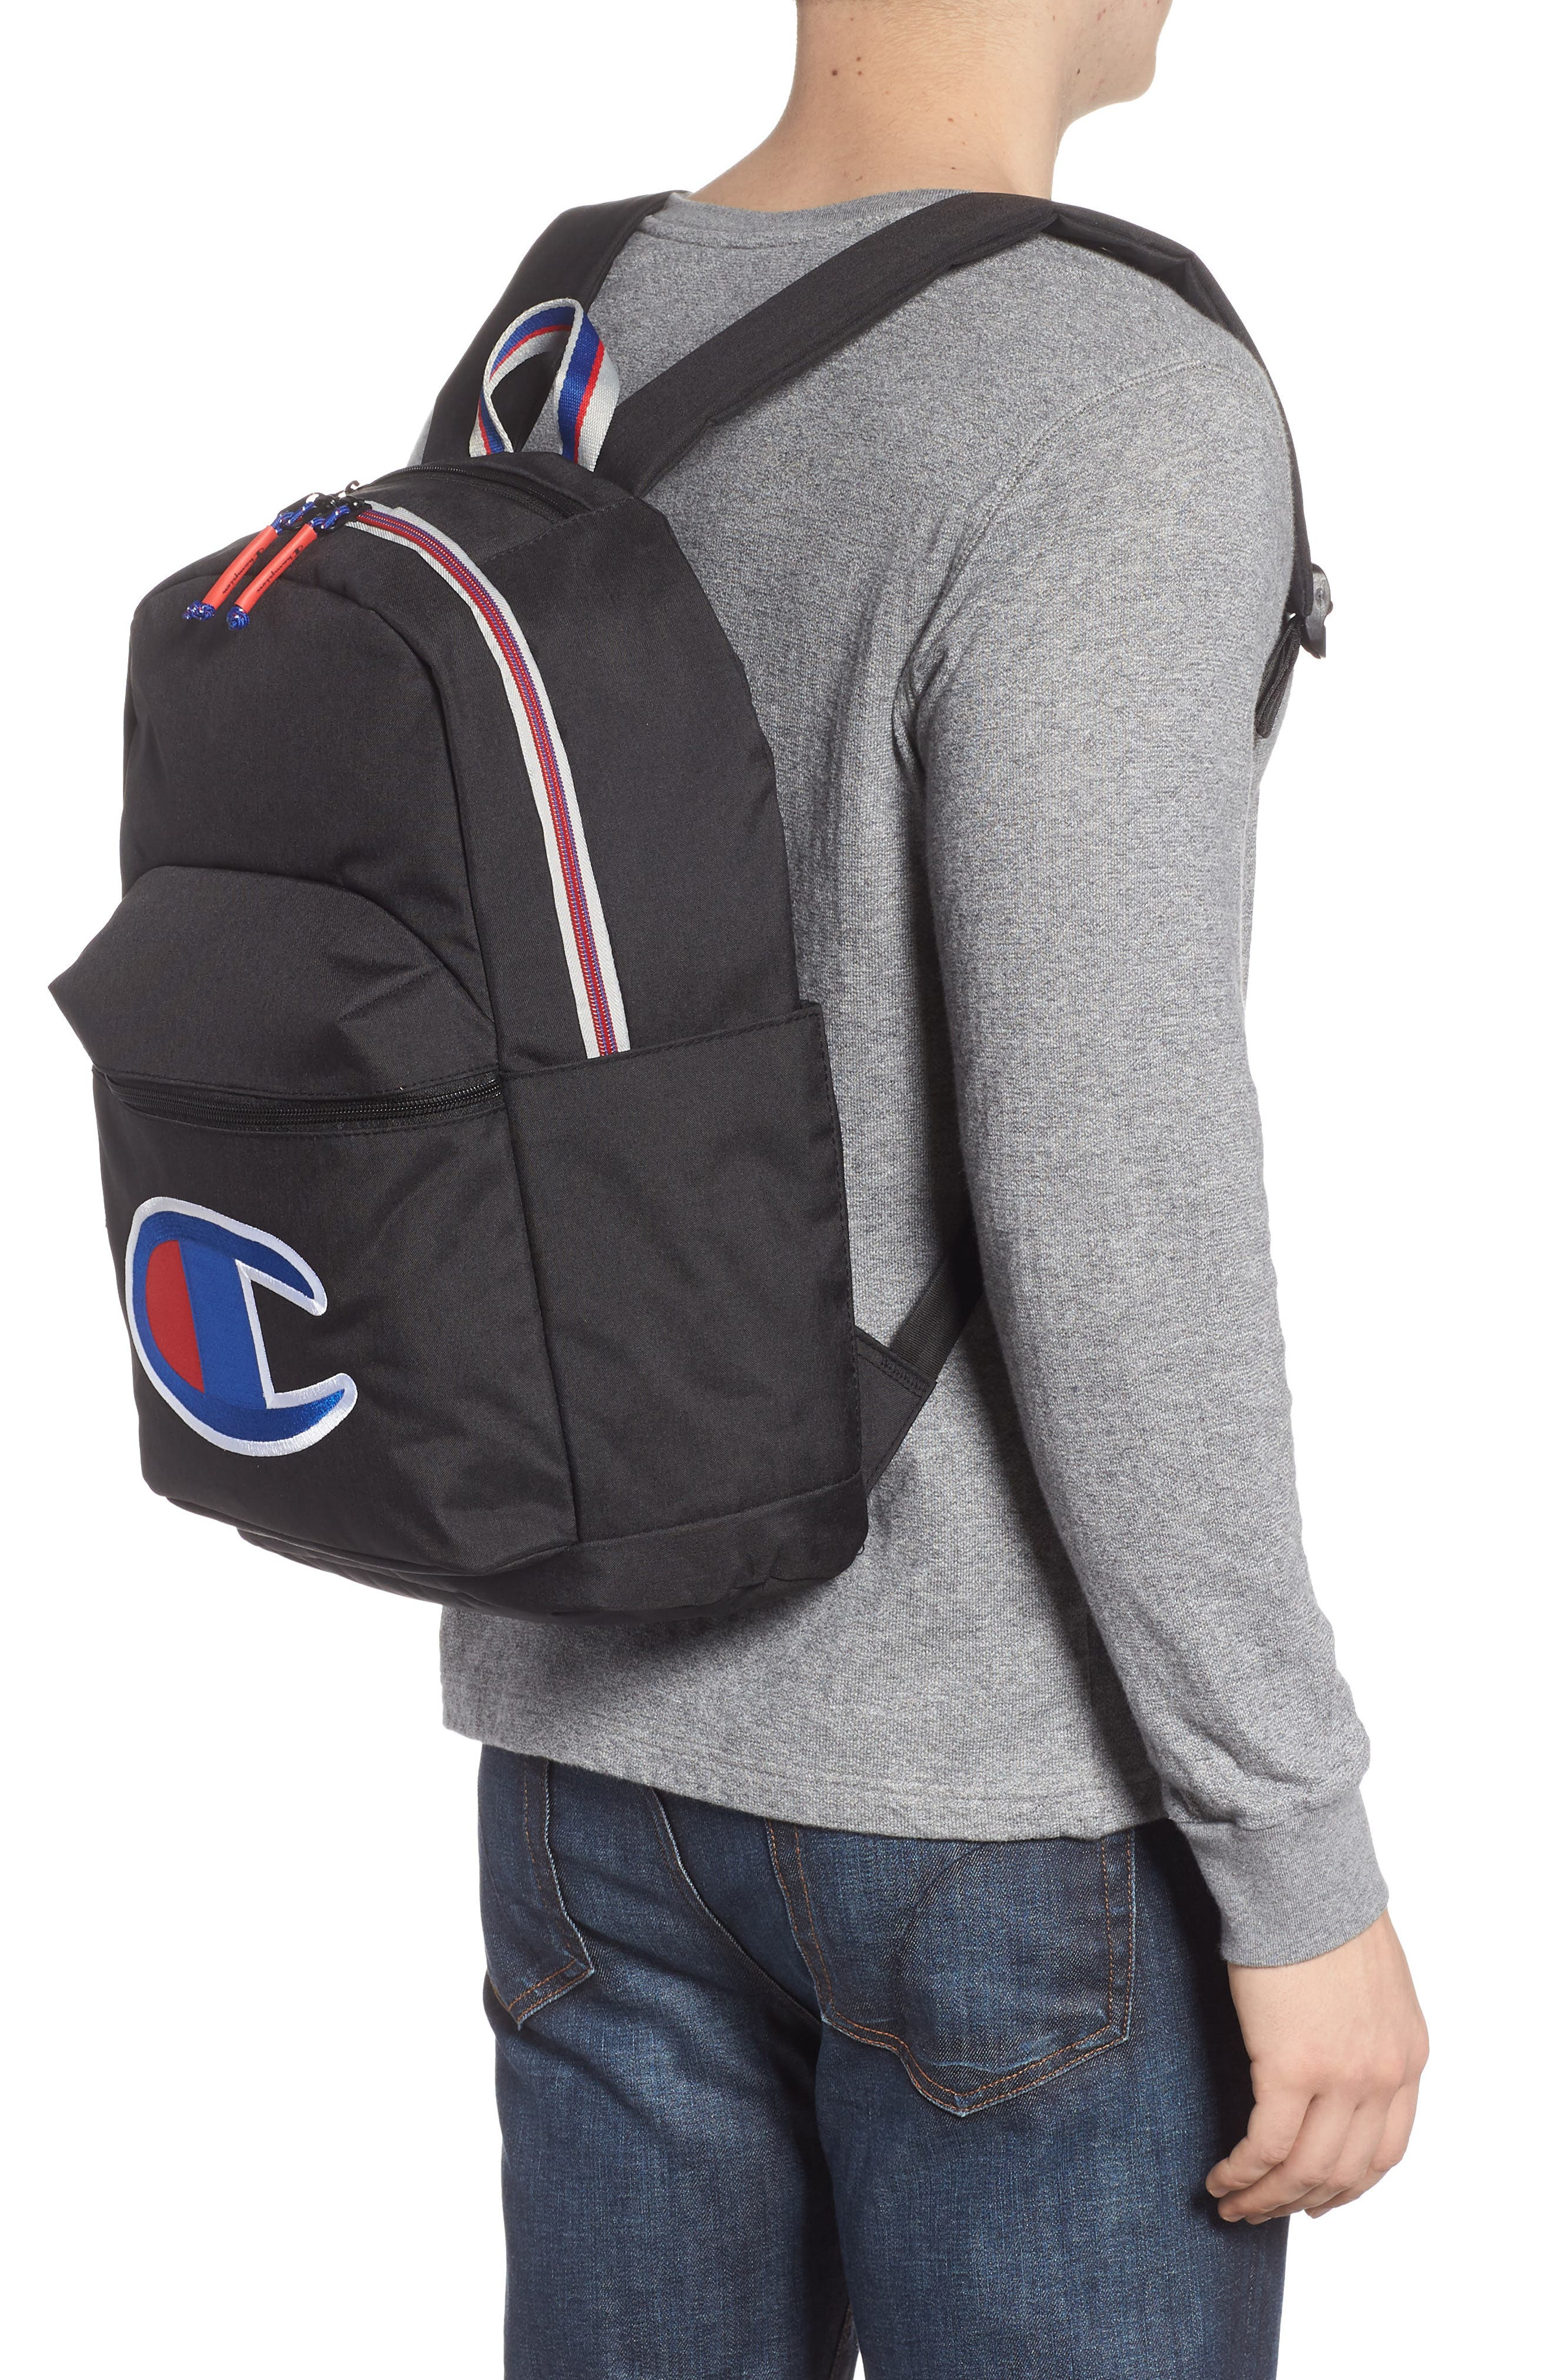 Supercize Backpack,                             Alternate thumbnail 2, color,                             BLACK HEATHER